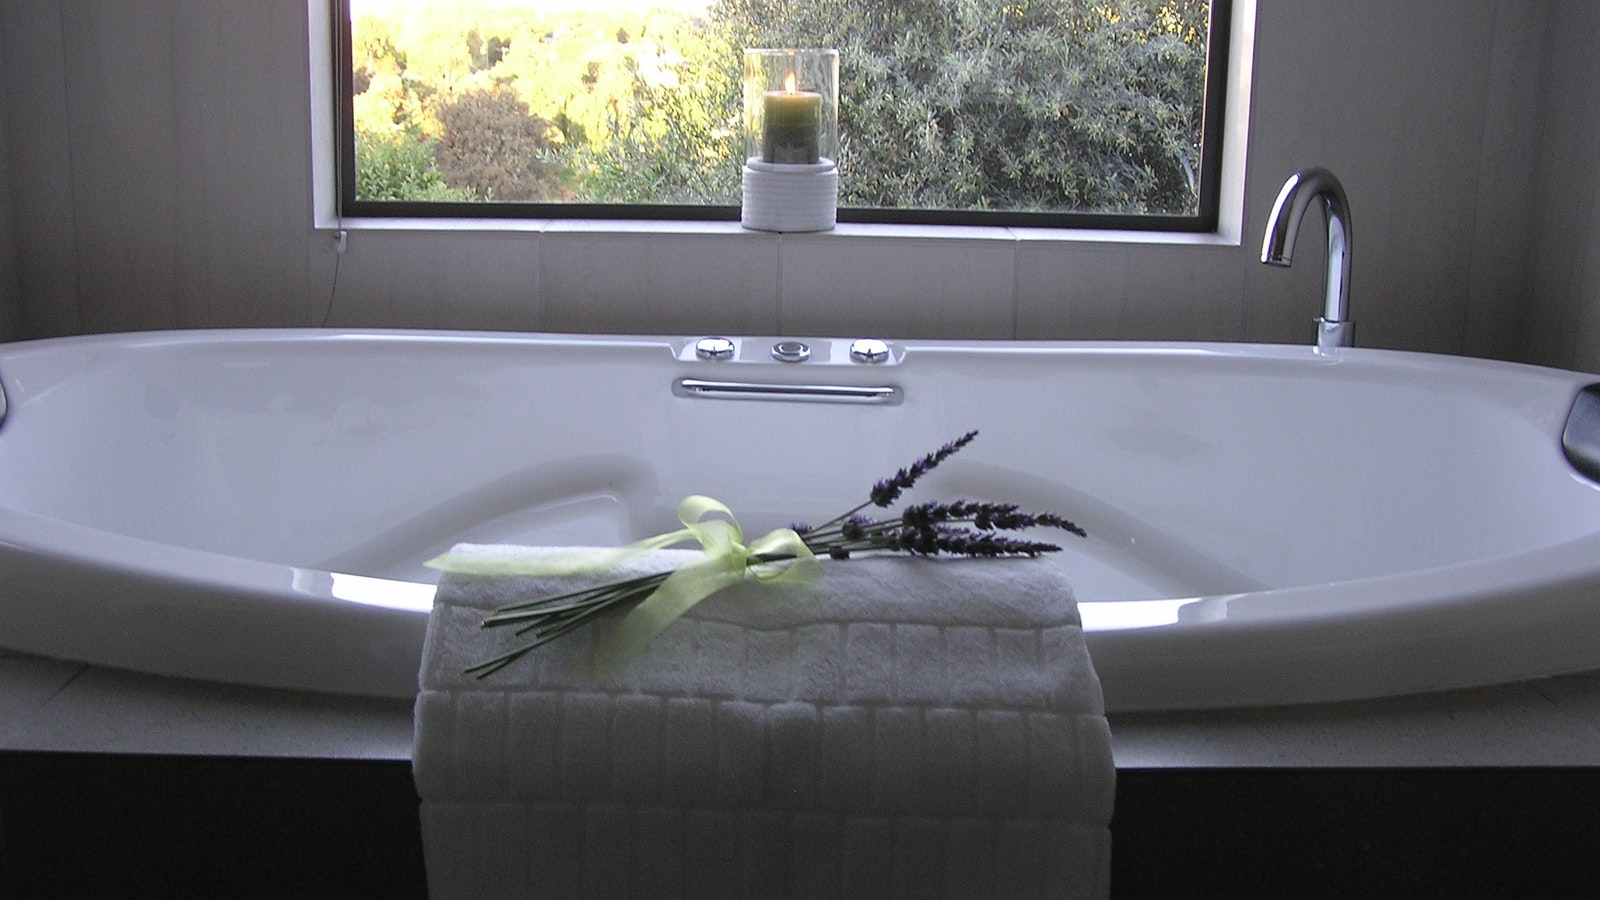 Double spa bath under picture window